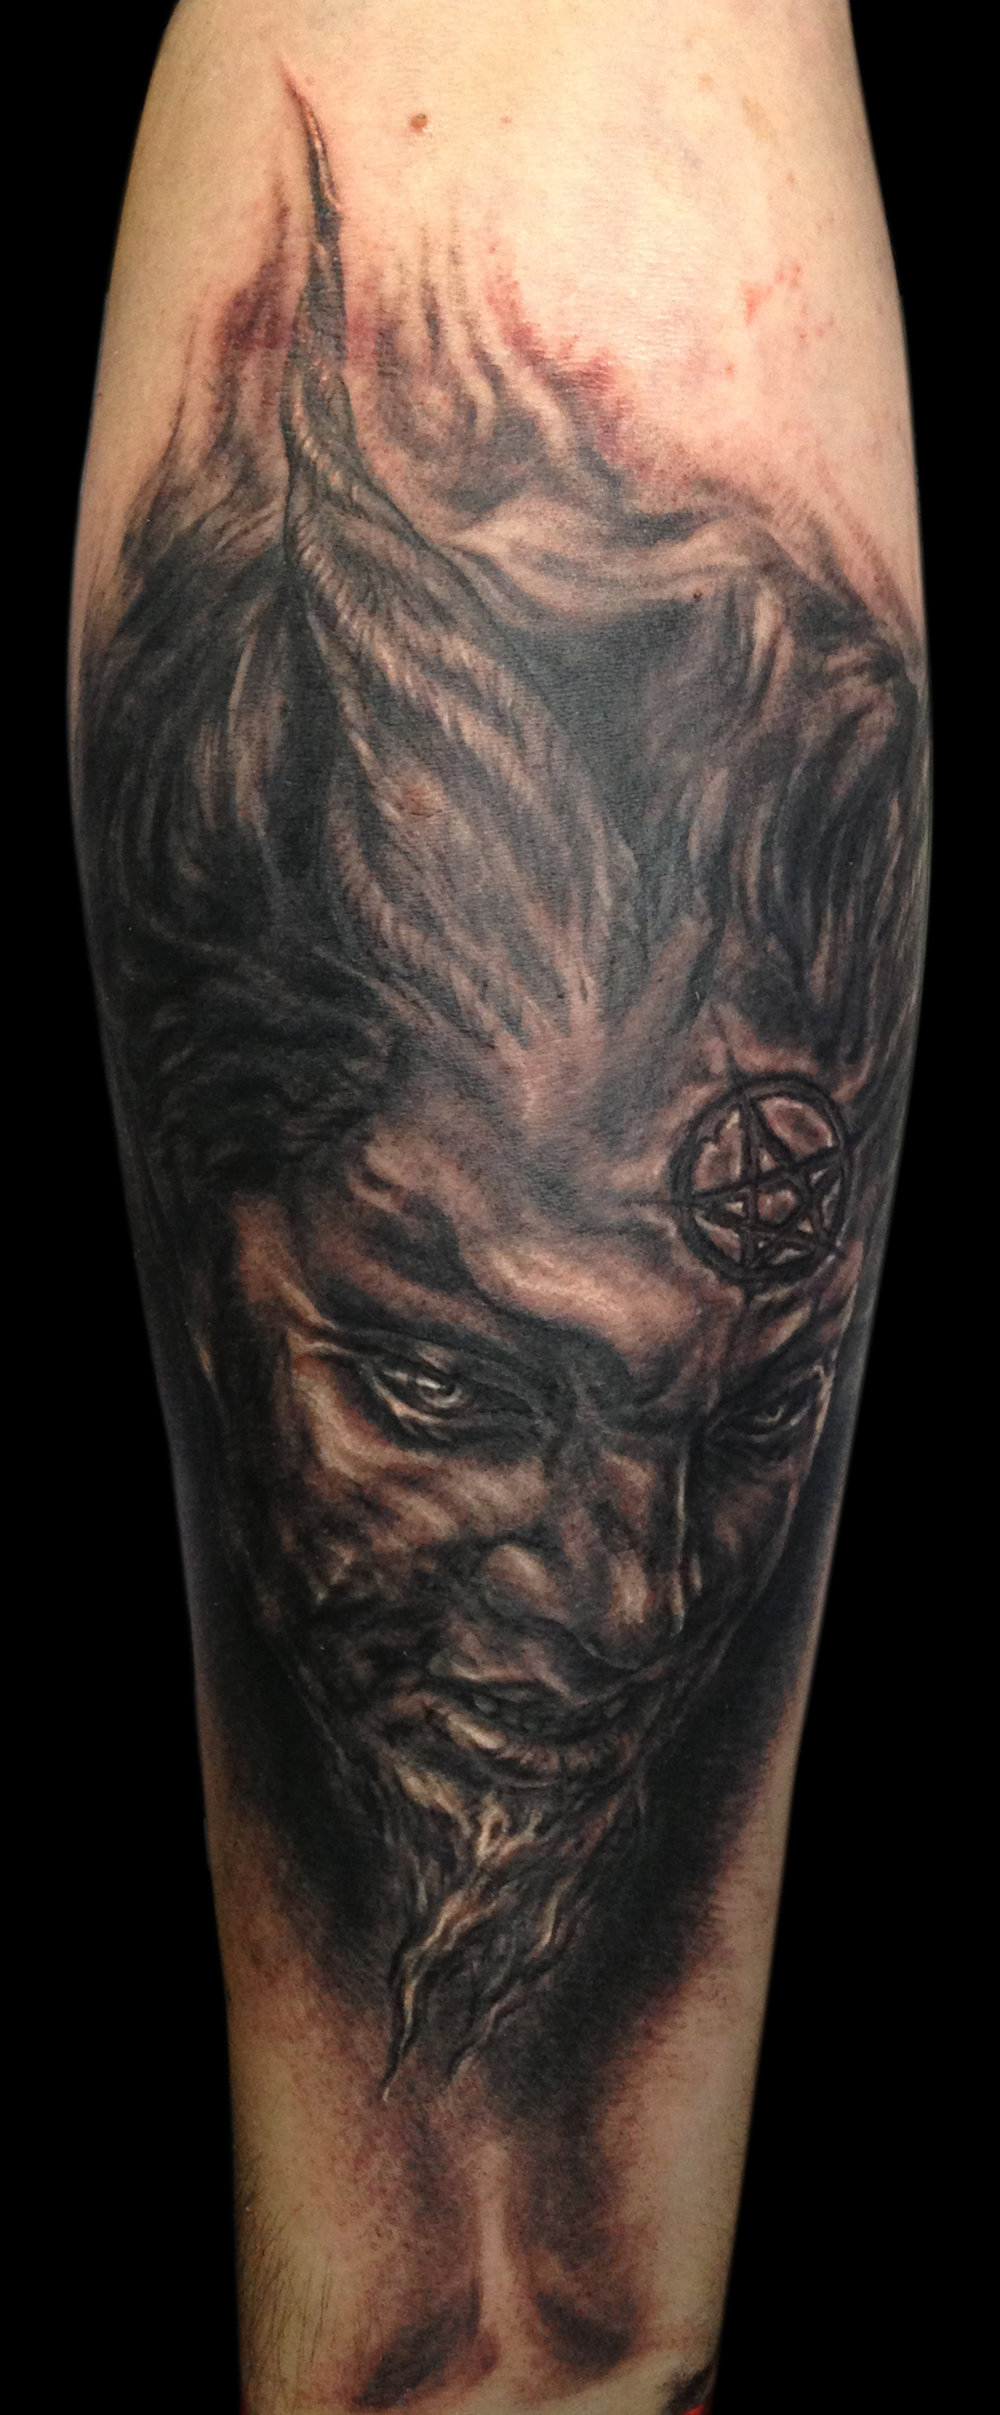 Black and Grey Devil Face Tattoo, (fresh) International Brussels Tattoo Convention, Belgium